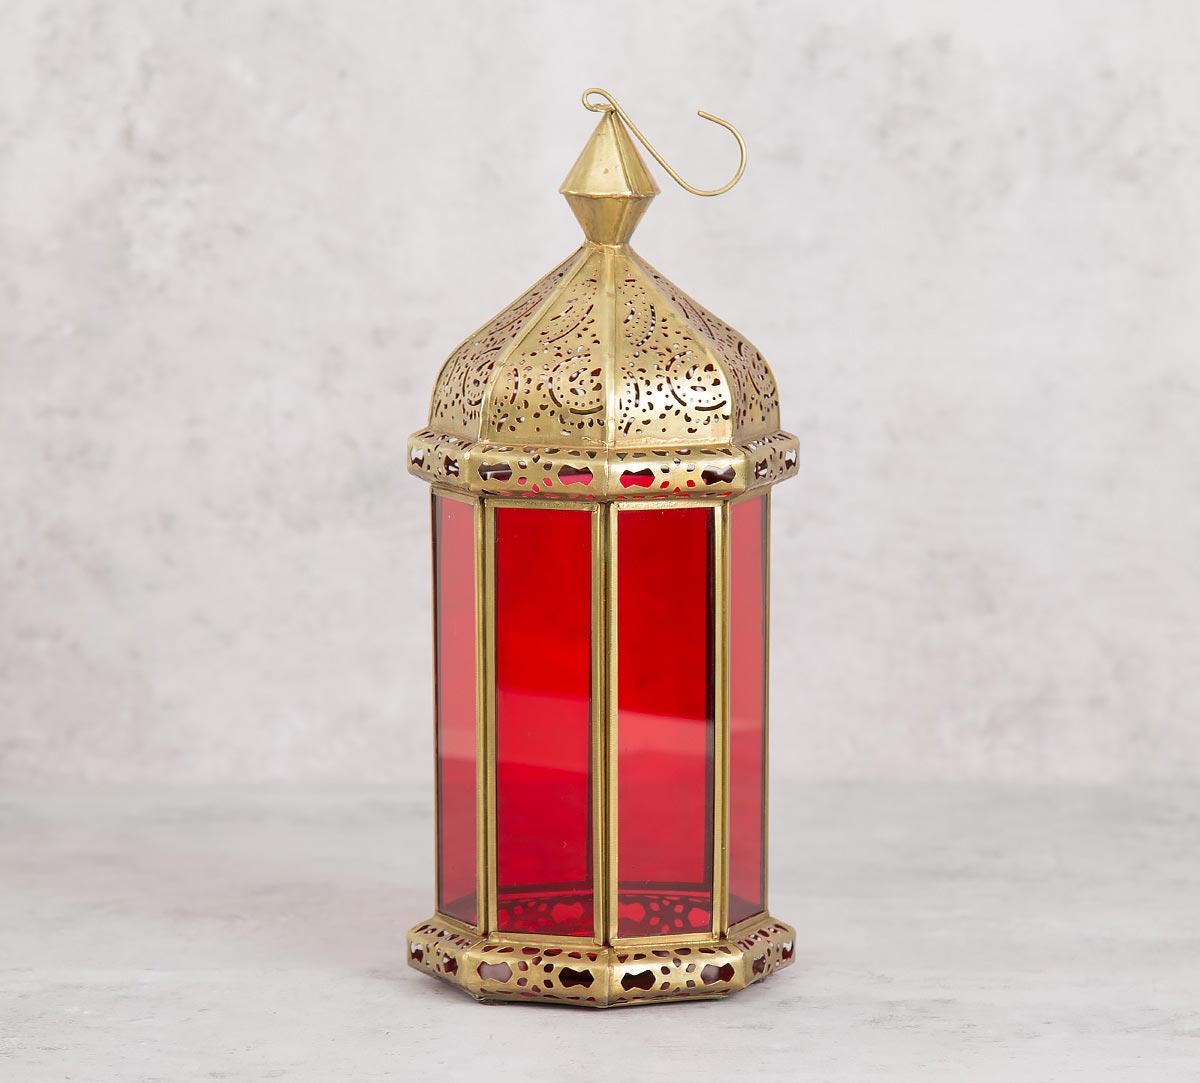 Buy Antique Handcrafted Buddha Lantern For Corporate: Buy Gold Decorative Lanterns Online